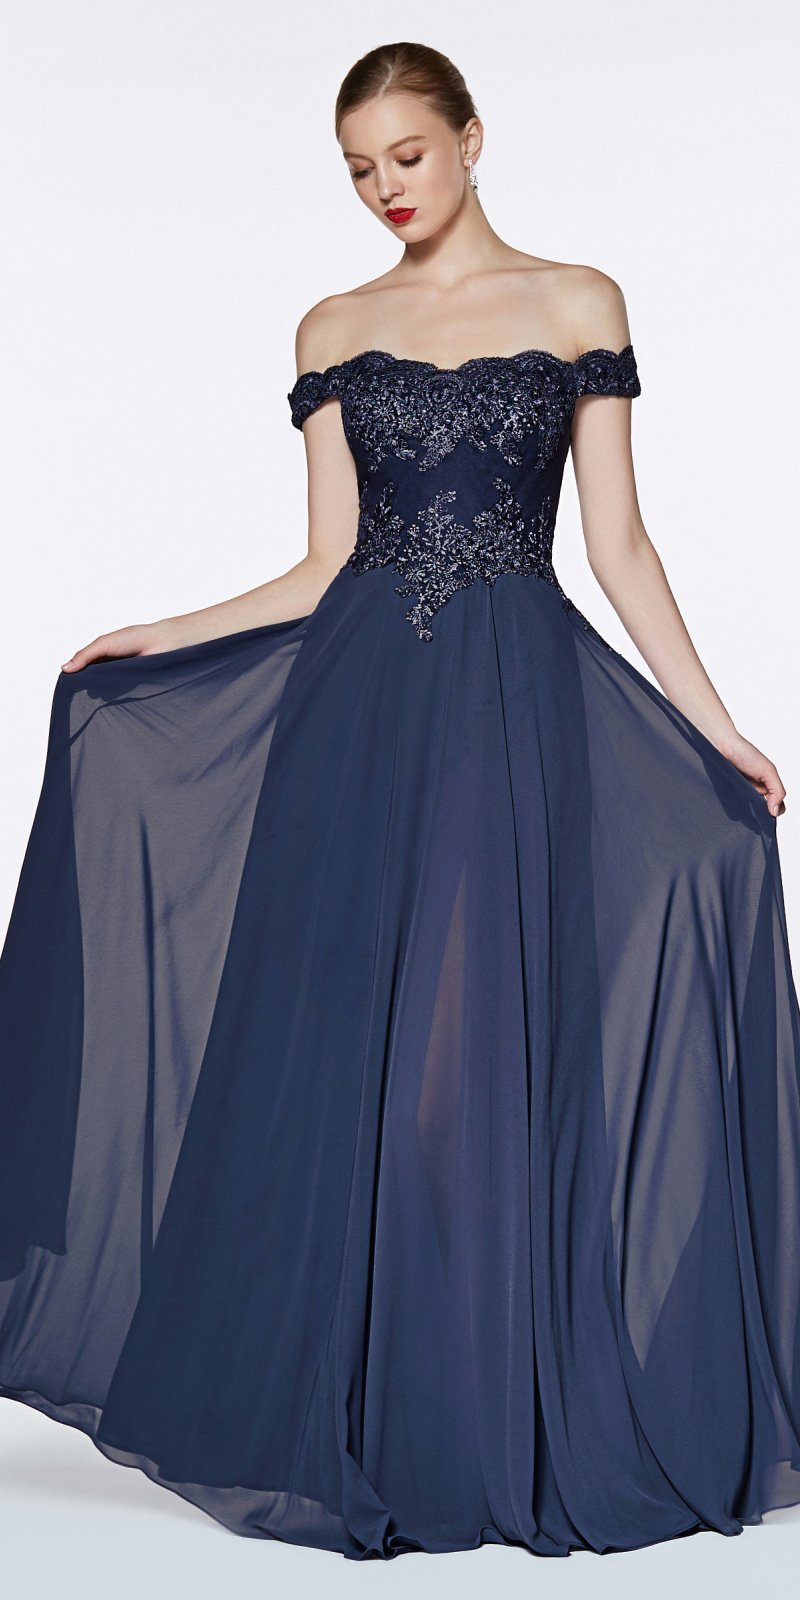 c2c0594131 Cinderella Divine 7258 Off The Shoulder Long Chiffon Gown Navy Blue. Tap to  expand